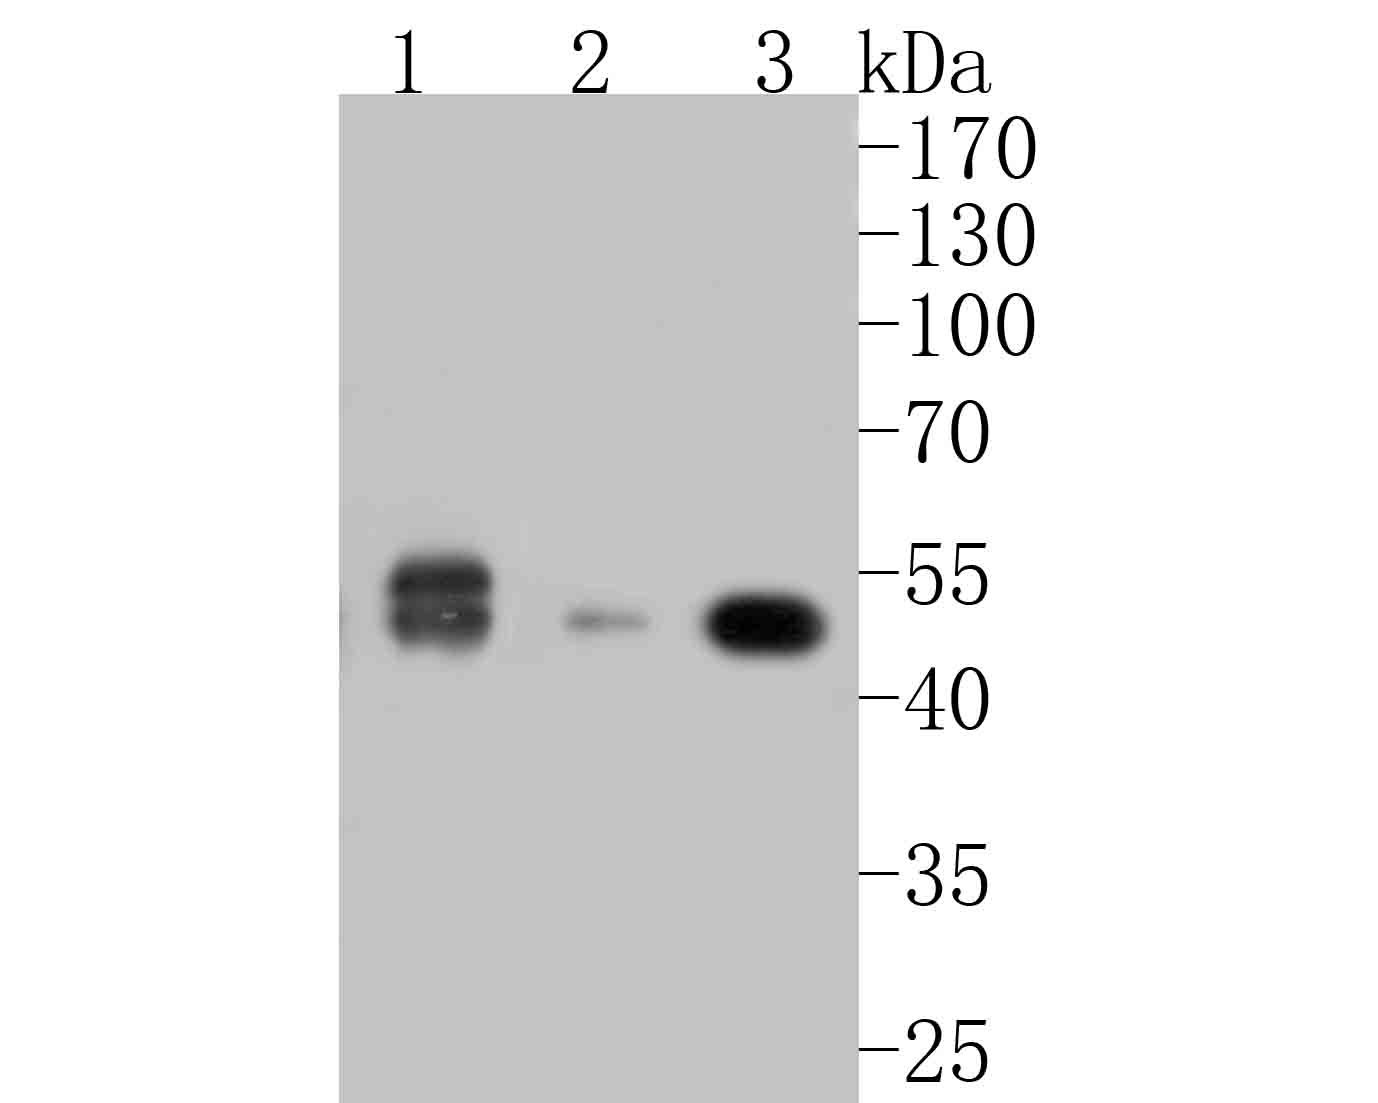 Western blot analysis of Cyclin A2 on different lysates. Proteins were transferred to a PVDF membrane and blocked with 5% BSA in PBS for 1 hour at room temperature. The primary antibody (ET1612-26, 1/500) was used in 5% BSA at room temperature for 2 hours. Goat Anti-Rabbit IgG - HRP Secondary Antibody (HA1001) at 1:5,000 dilution was used for 1 hour at room temperature.<br /> Positive control: <br /> Lane 1: Jurkat cell lysate<br /> Lane 2: NIH/3T3 cell lysate<br /> Lane 2: PC-12 cell lysate